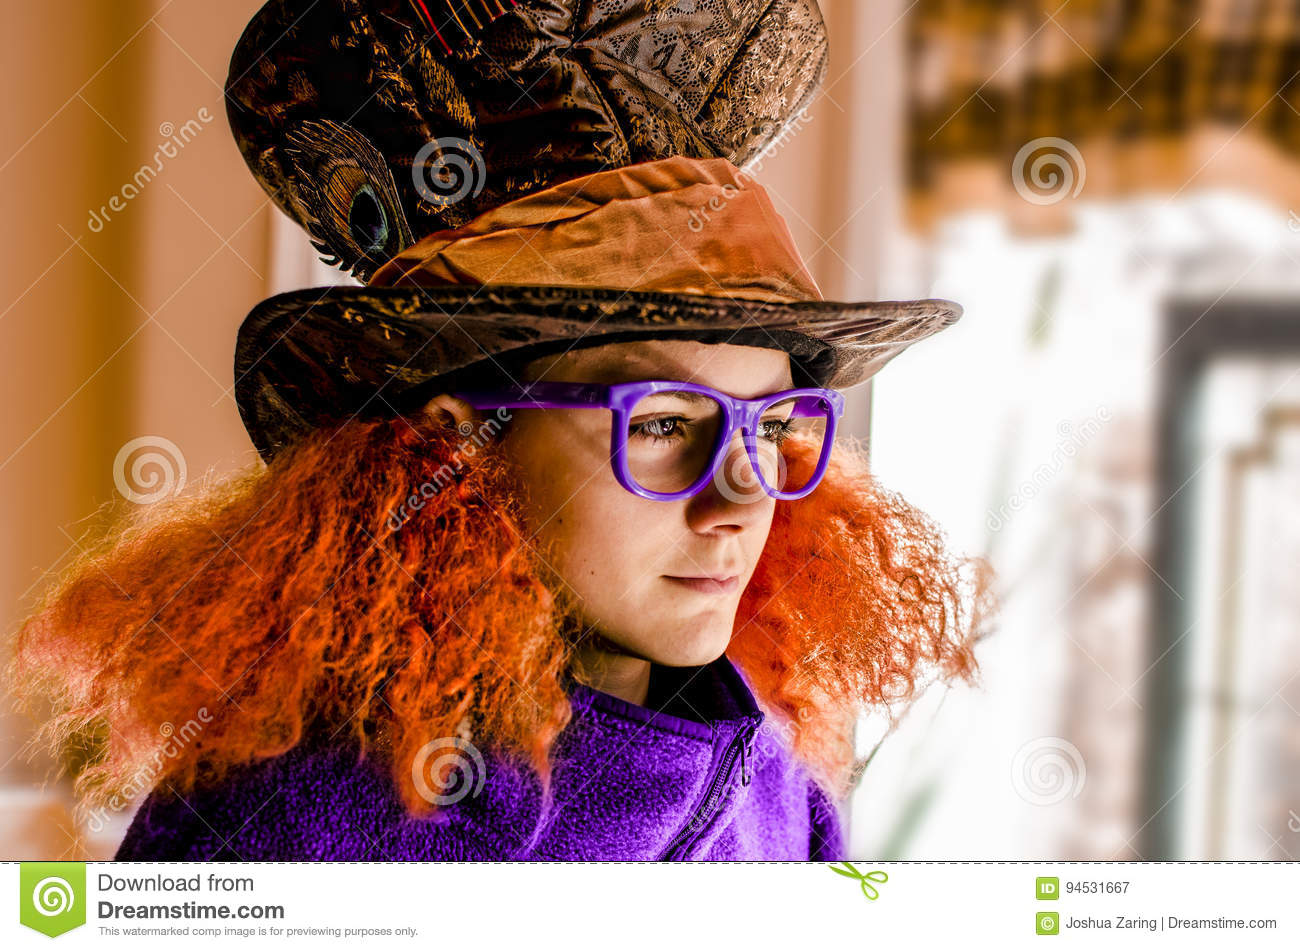 Teen Boy in Mad Hatter Style hat and hair